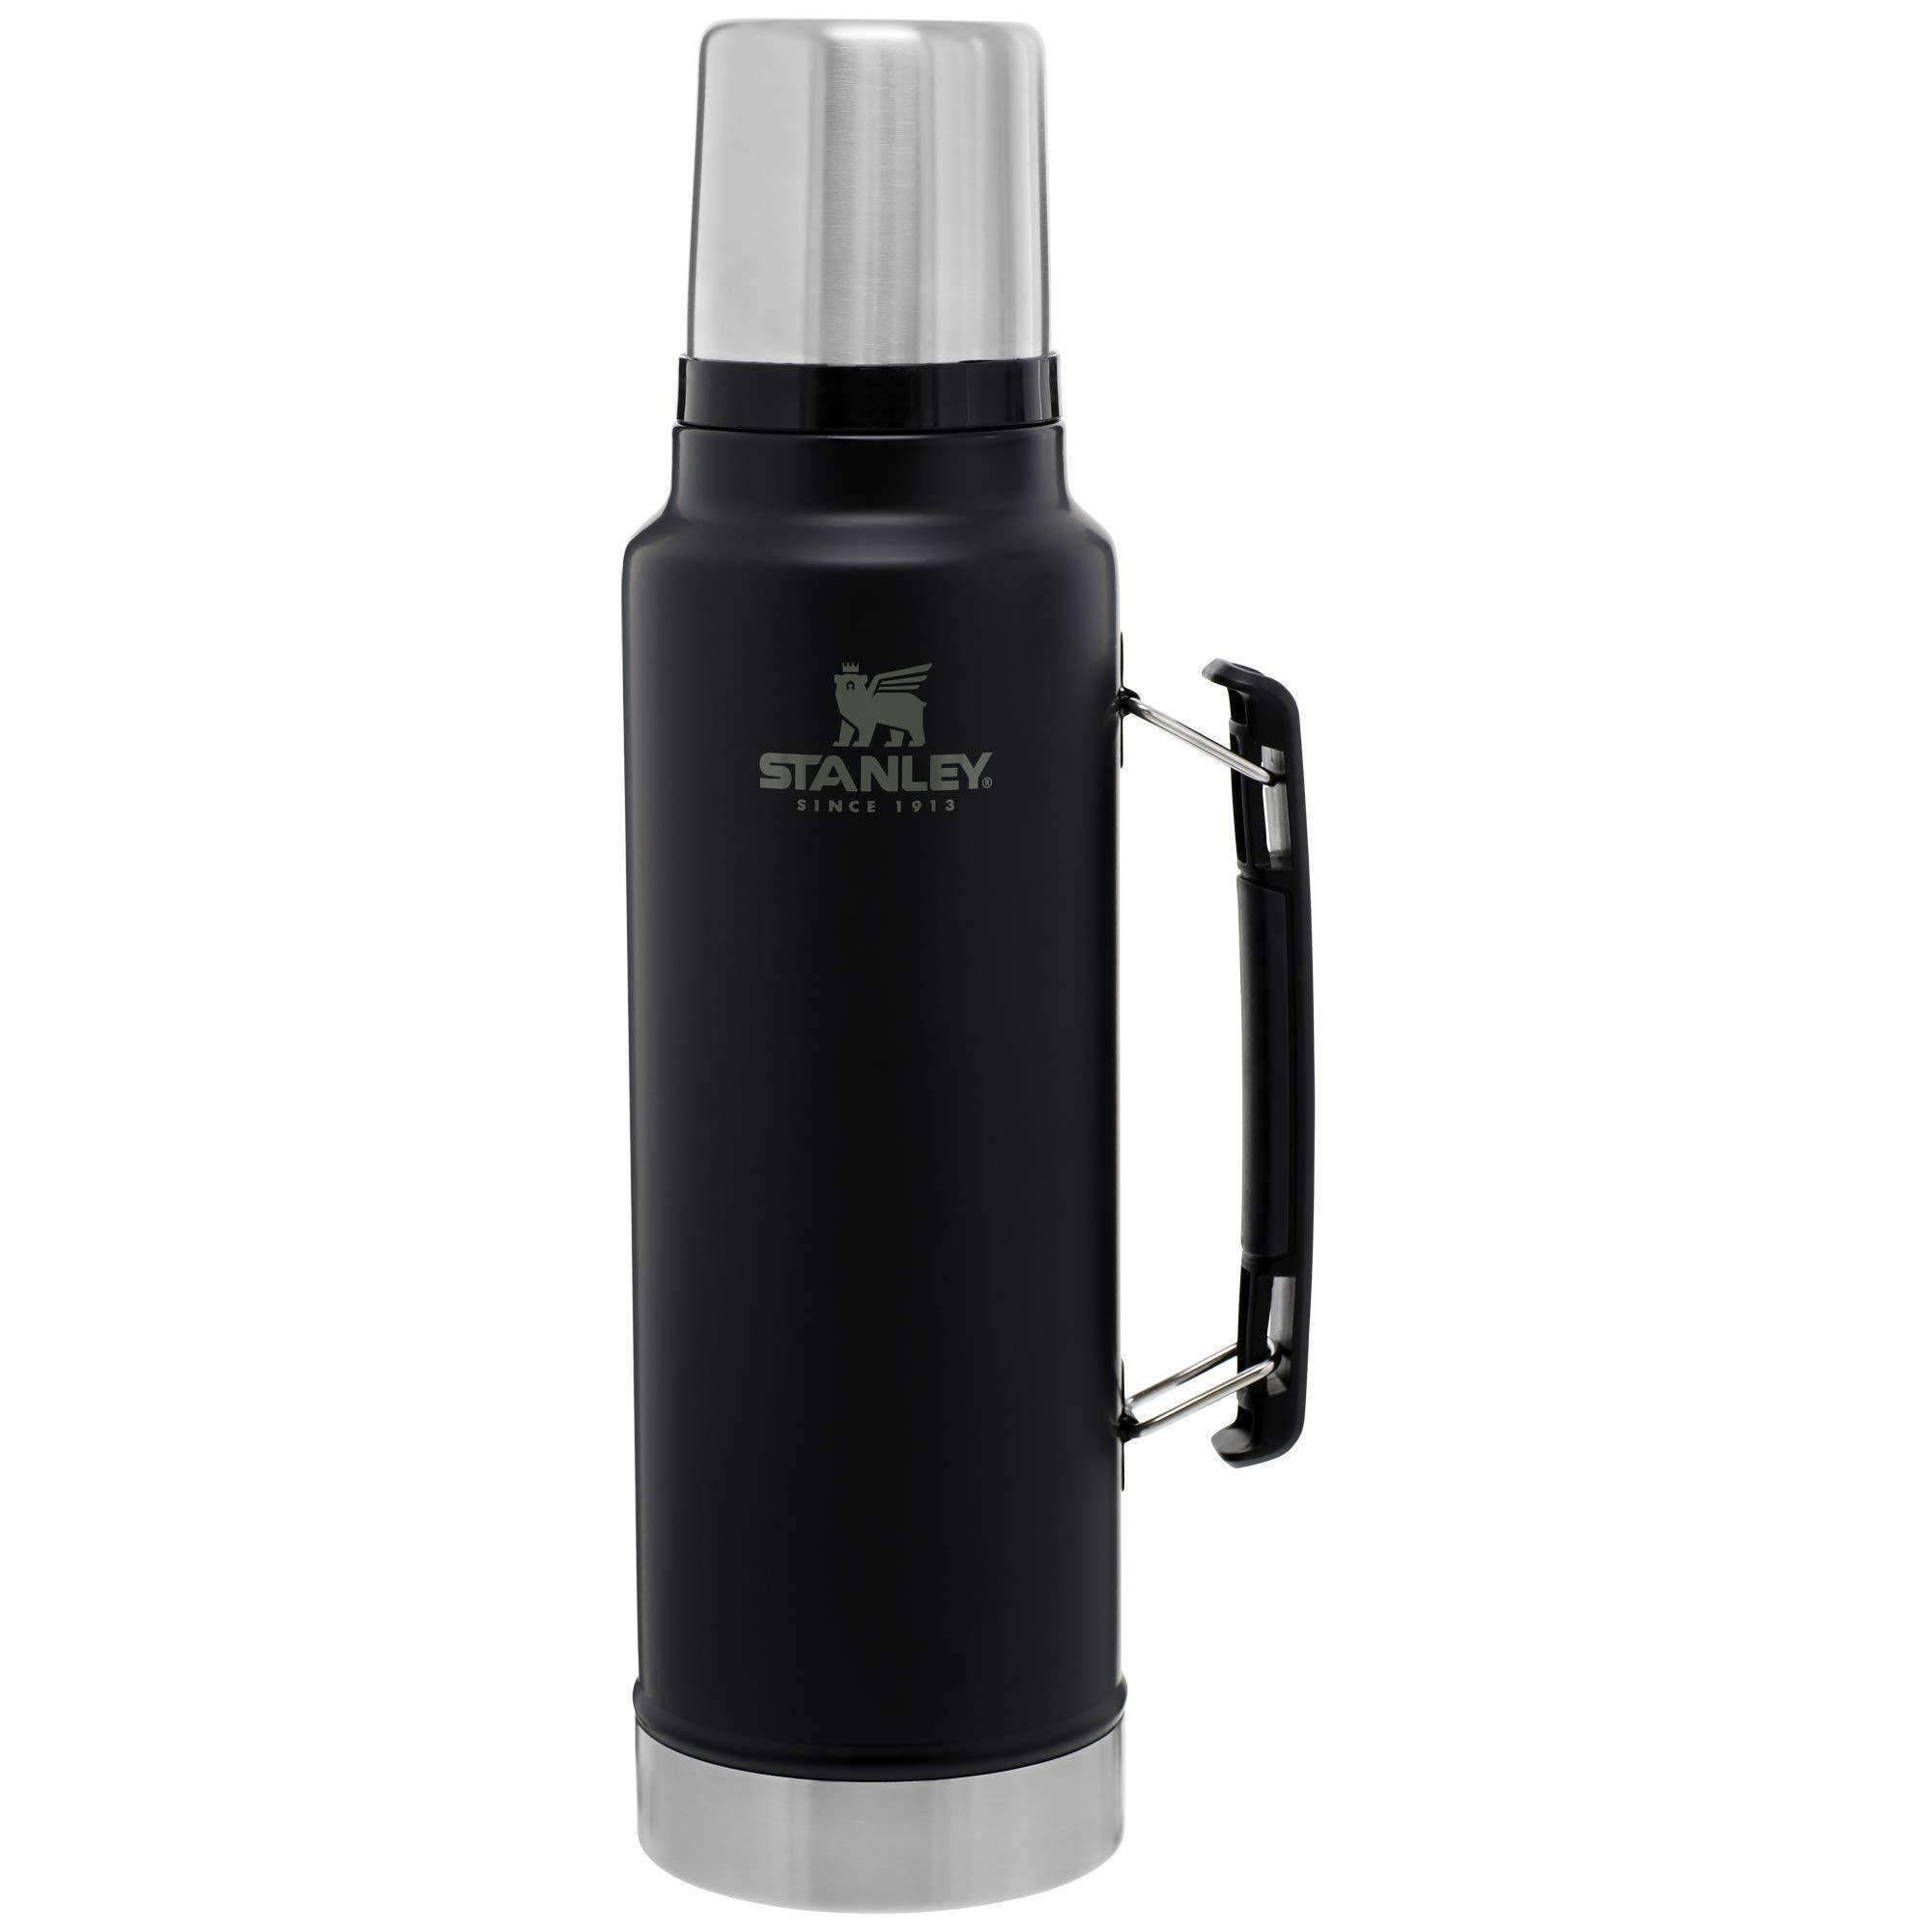 Stanley Legendary Classic Insulated Vacuum Bottle 1.5 Qt., Black